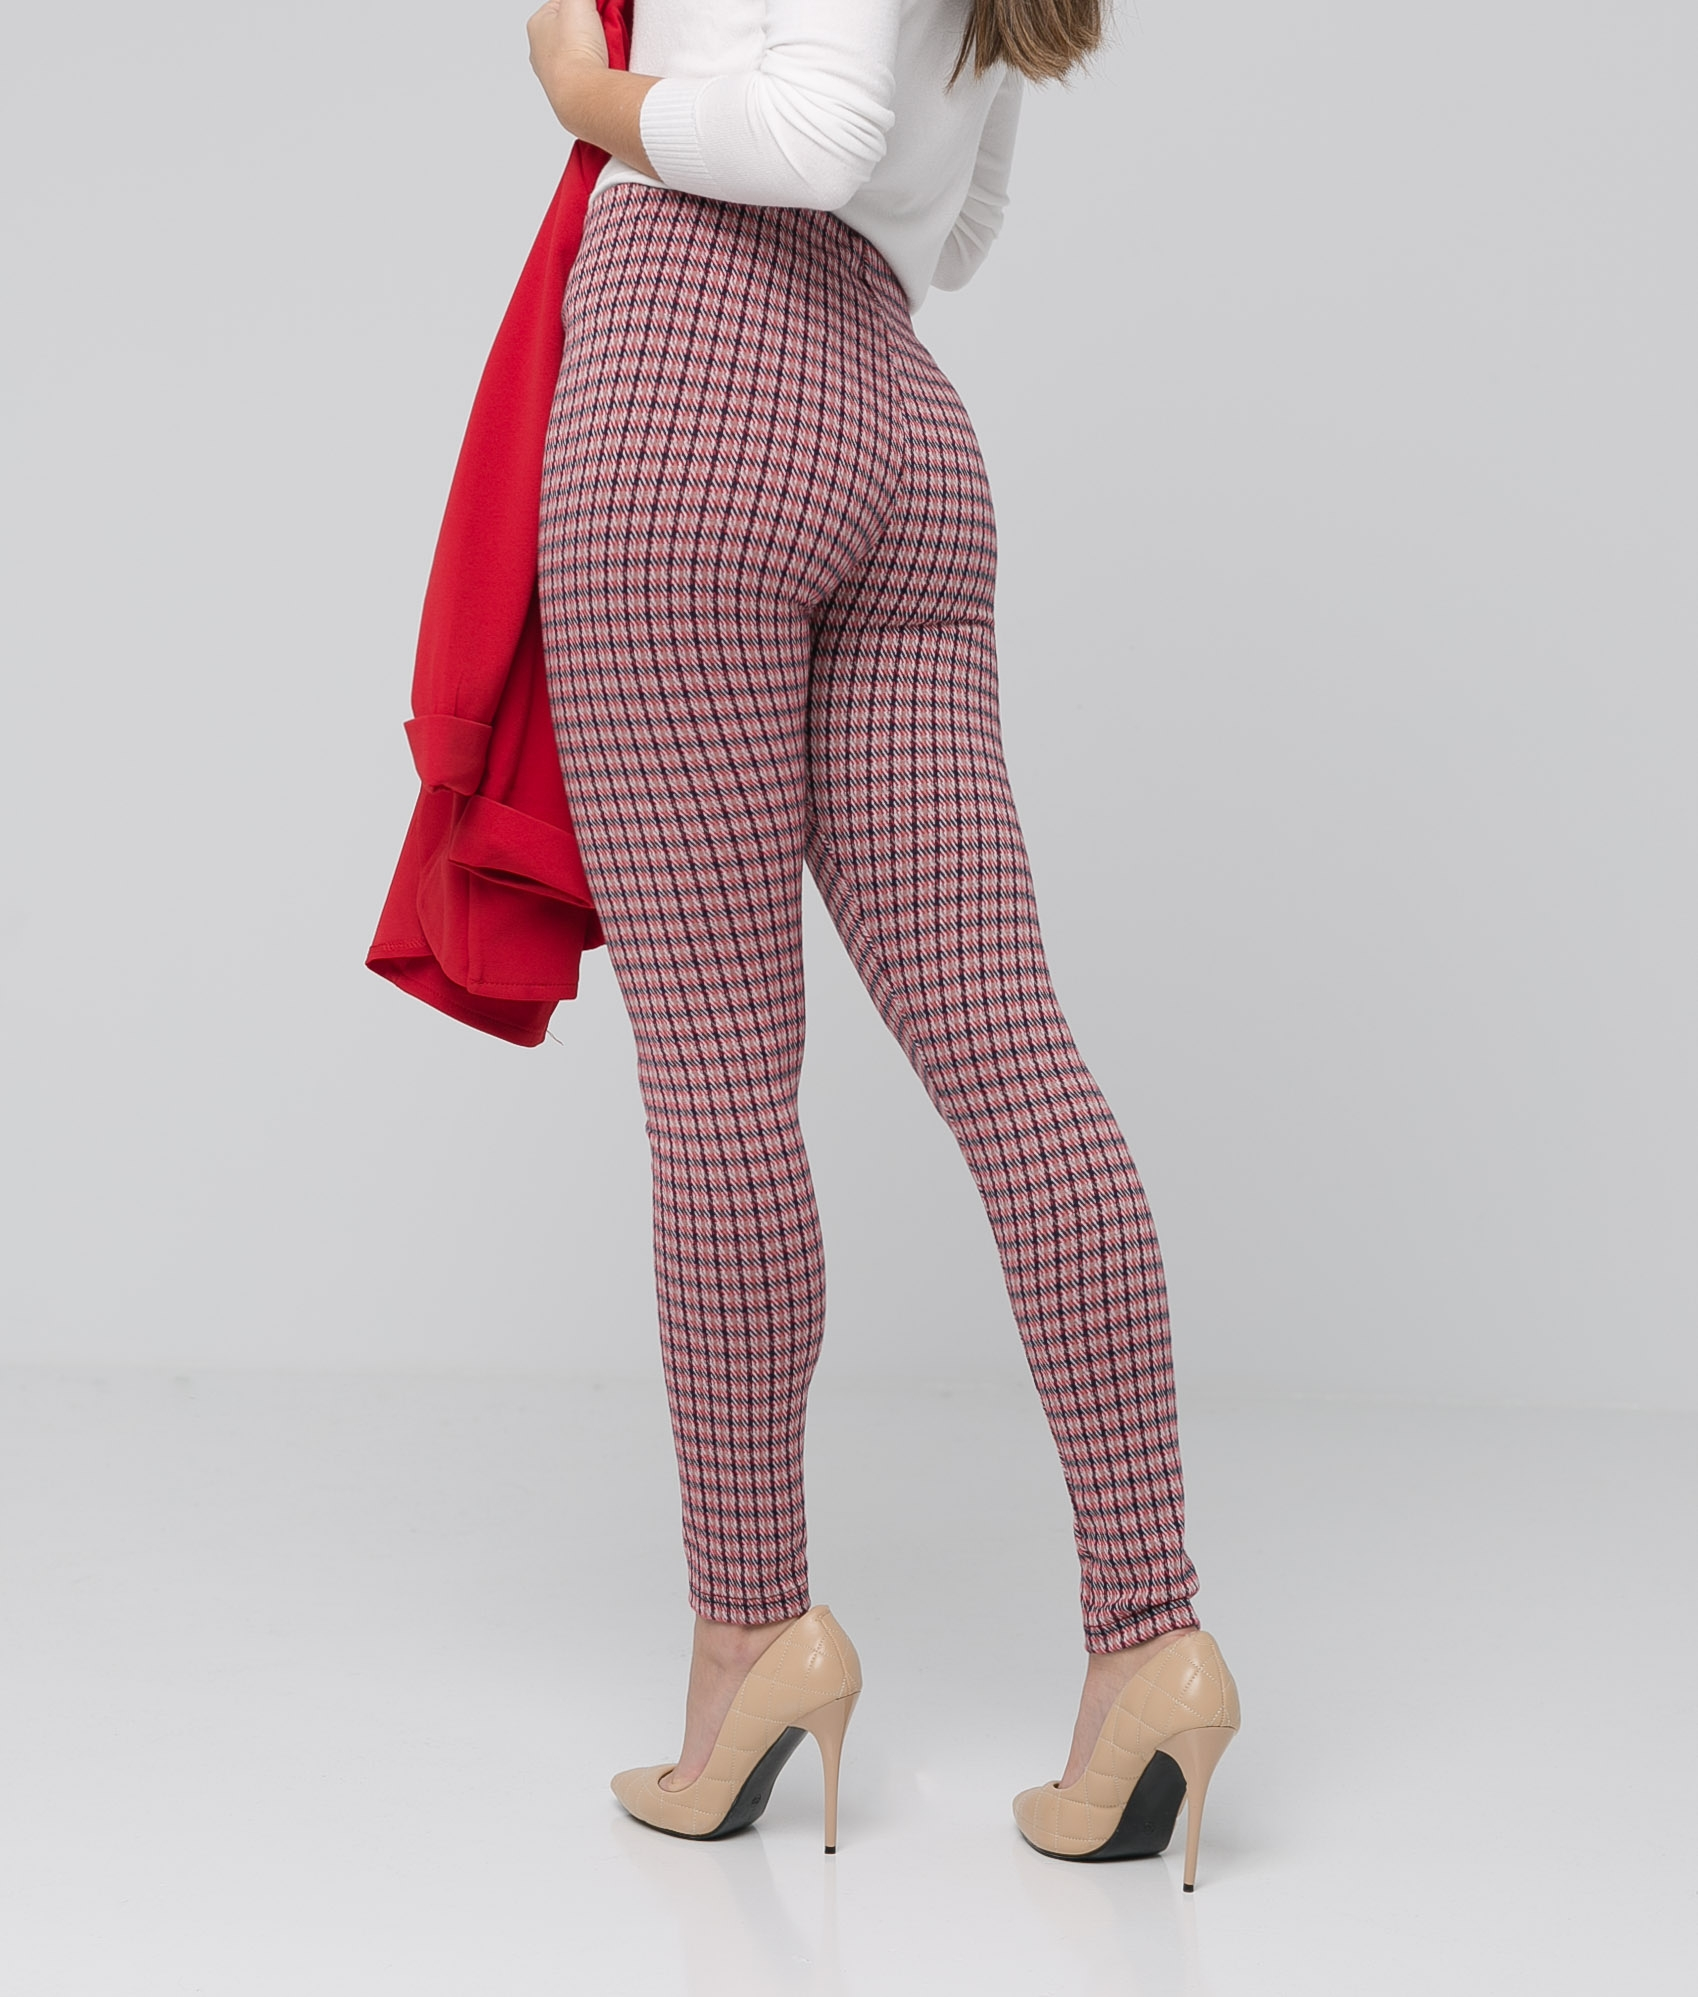 LEGGINS CRAIL - RED